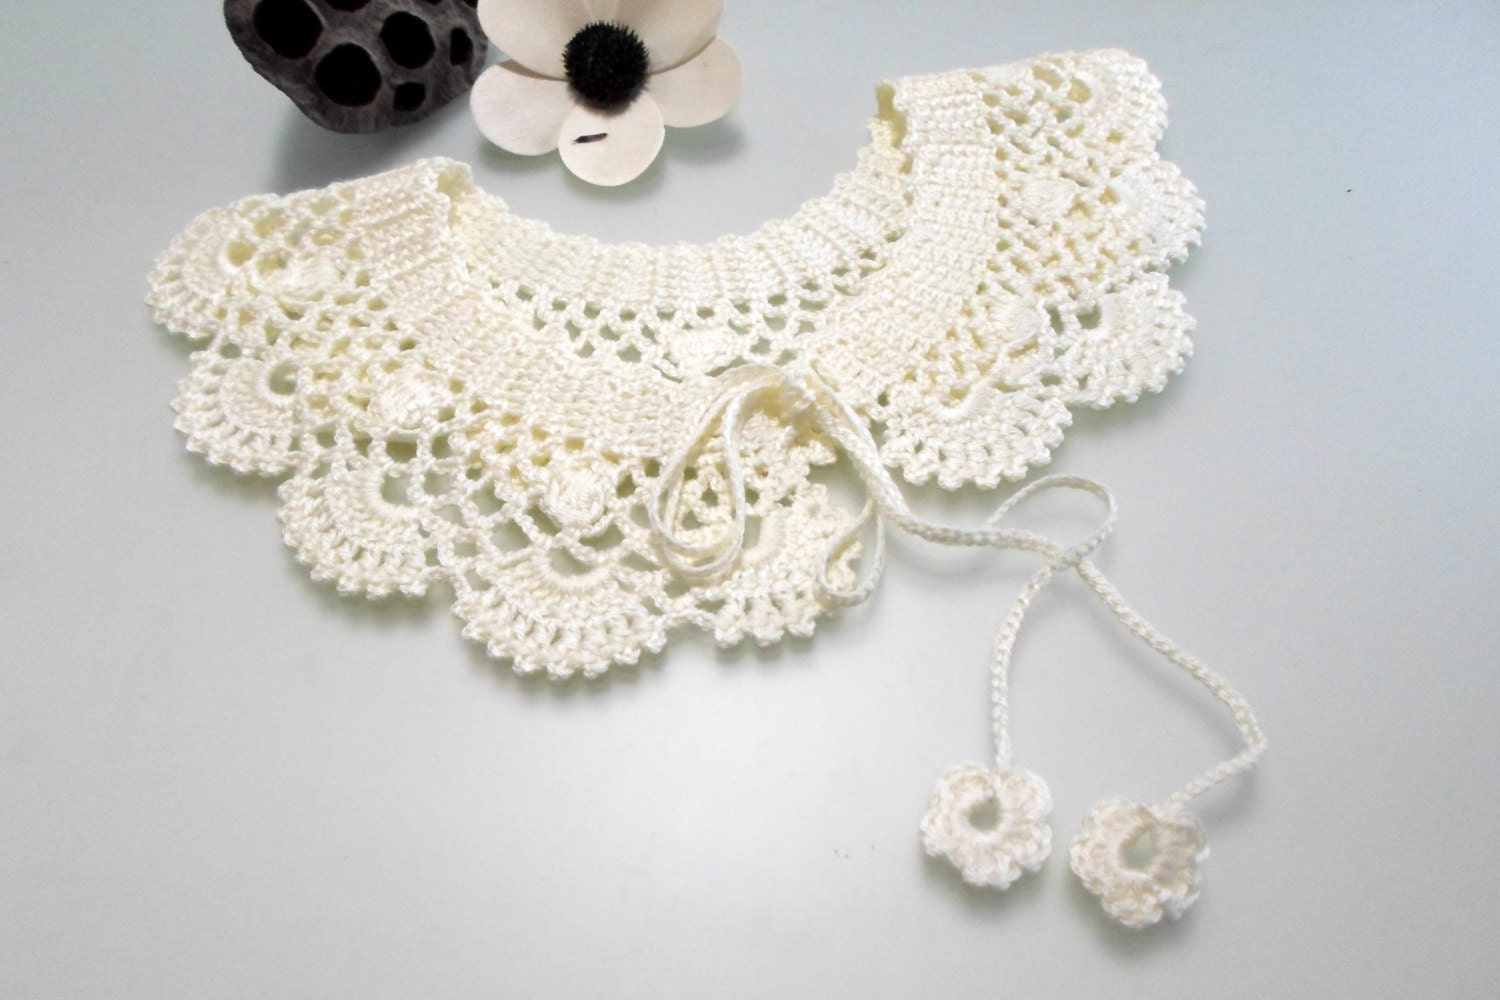 Crochet pattern lace collar pattern peter pan collar pdf pdf zoom bankloansurffo Image collections